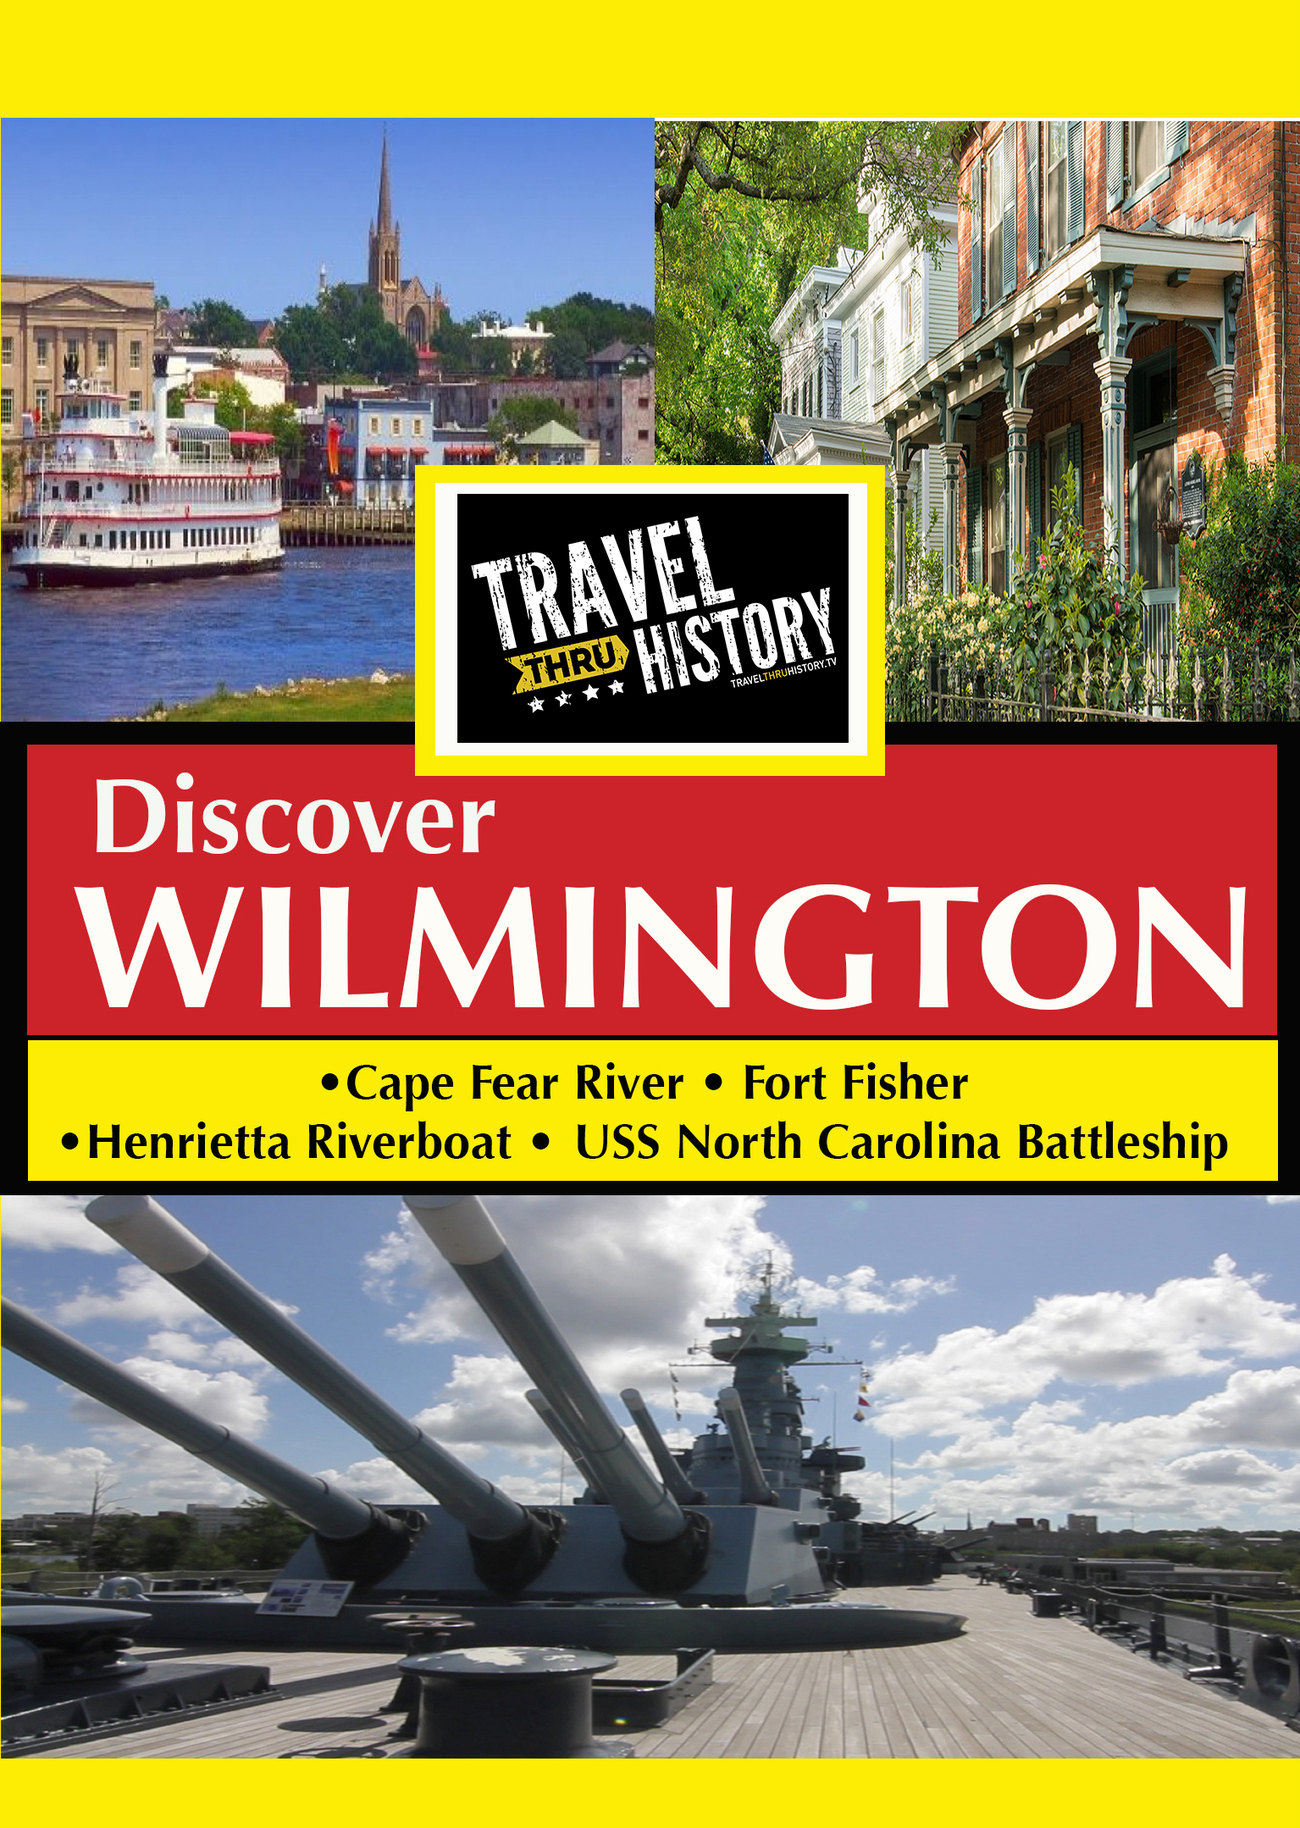 T8959 - Discover Wilmington